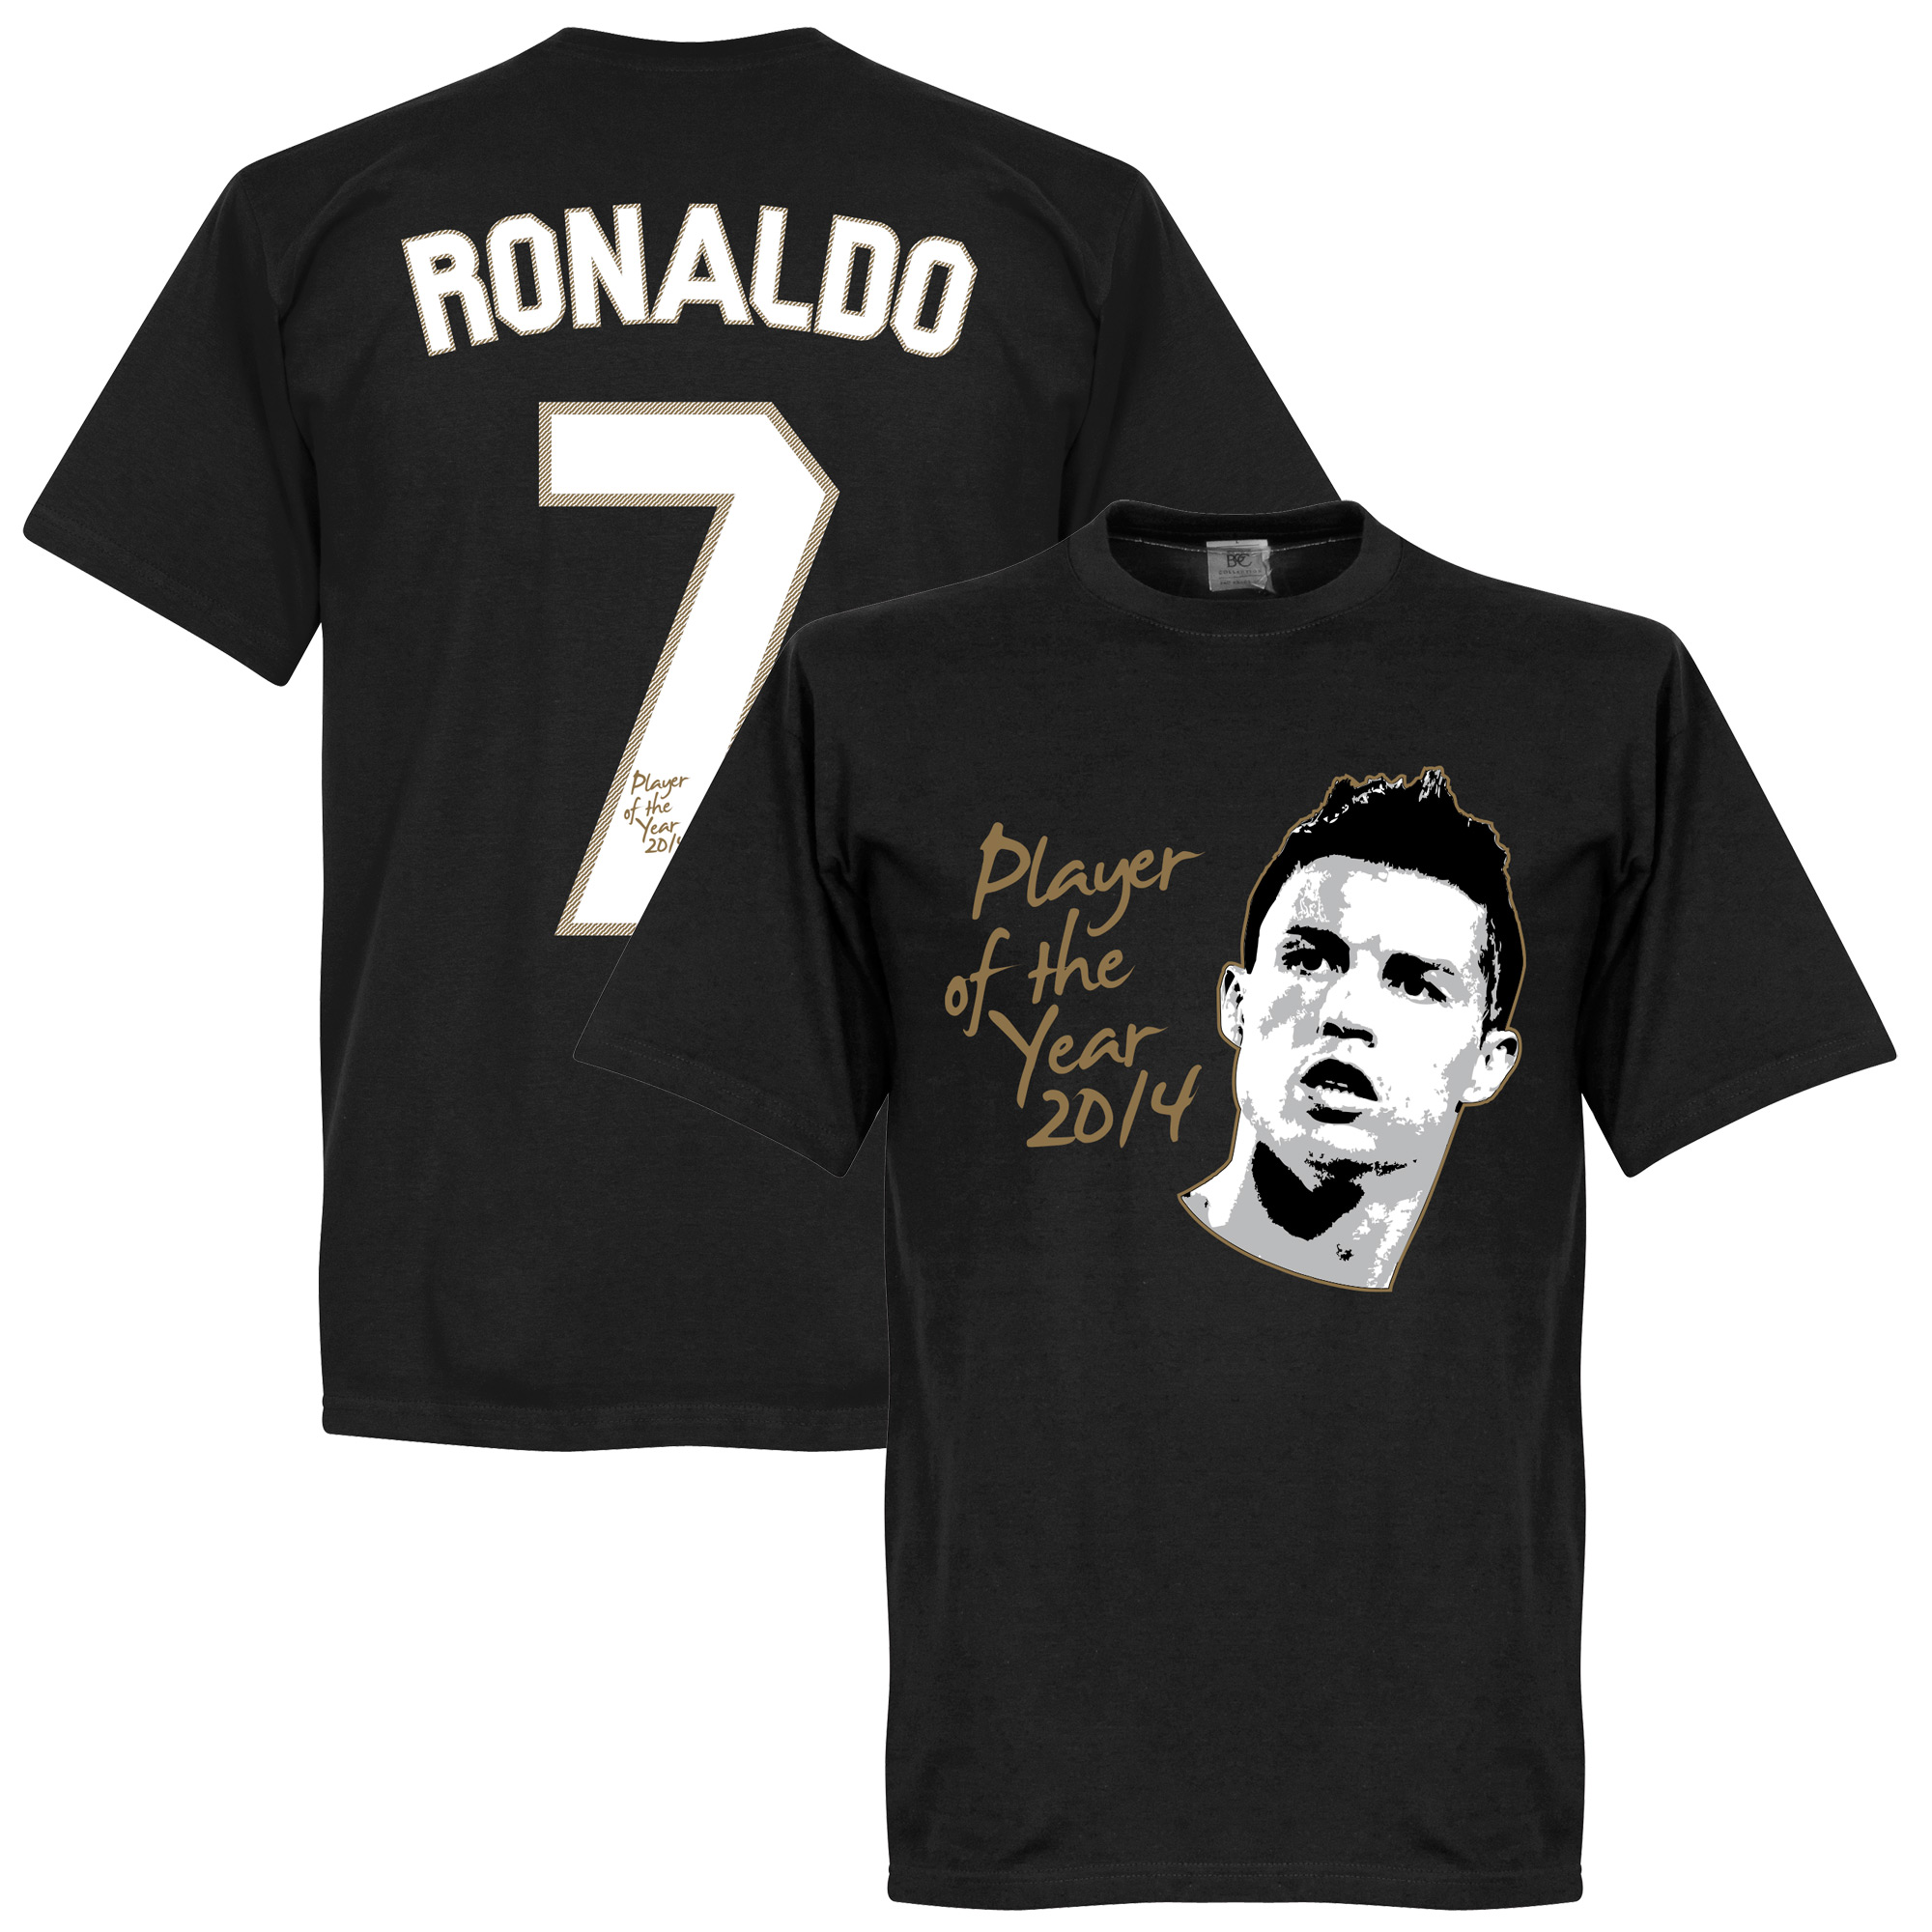 Ronaldo Player of the Year Tee - Black - S